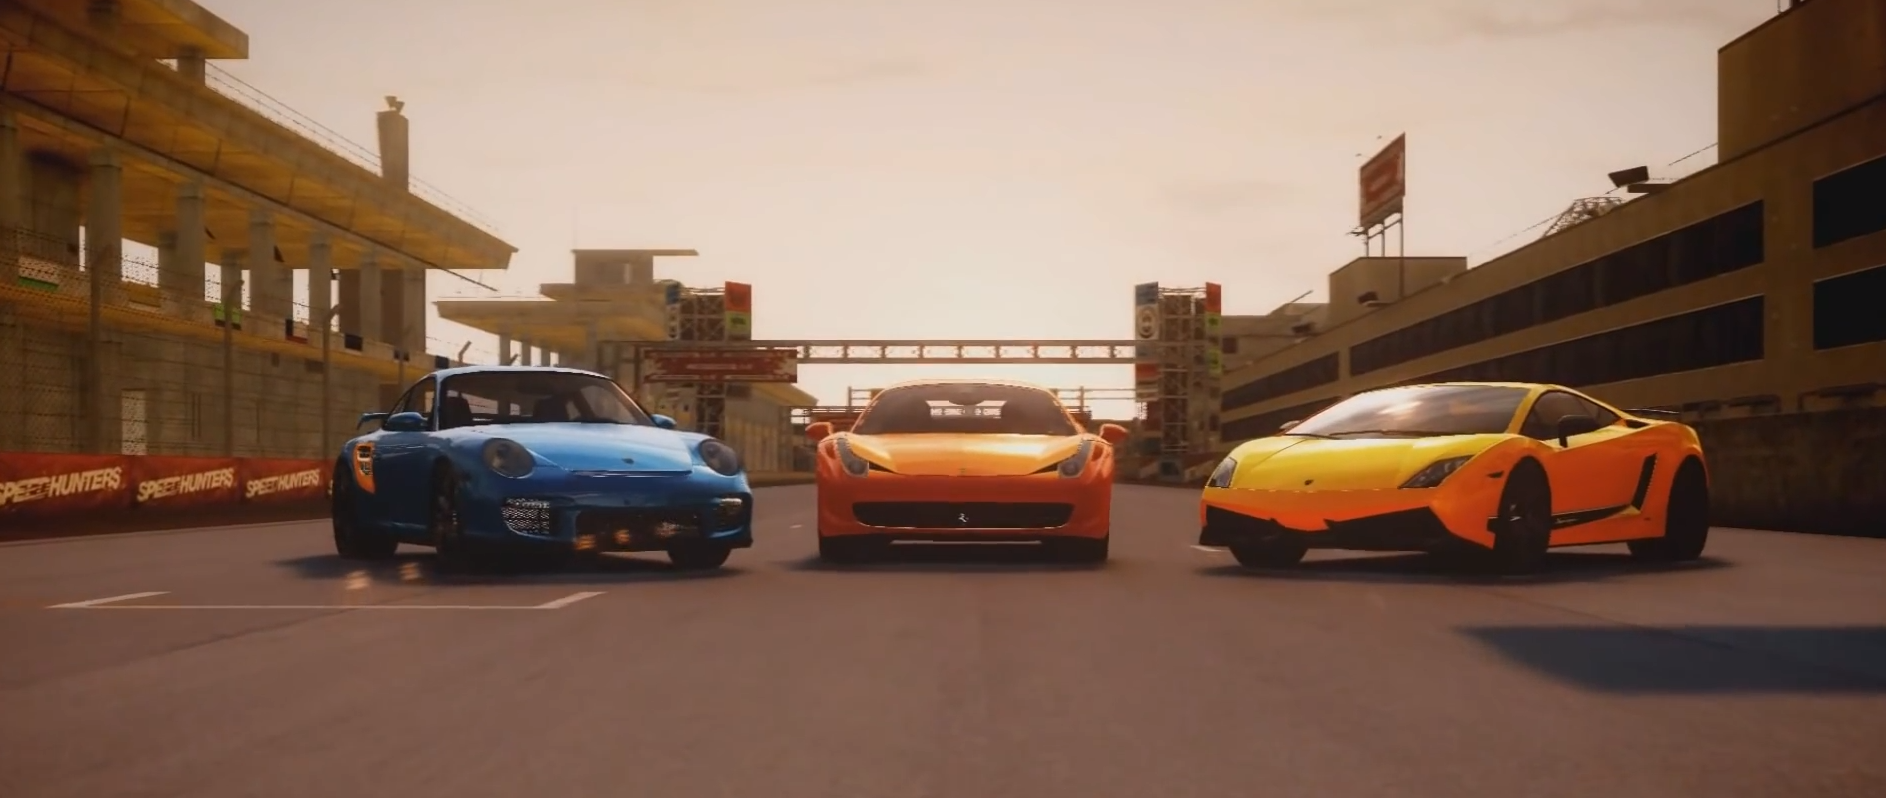 A video tribute to Forza made in GTA IV